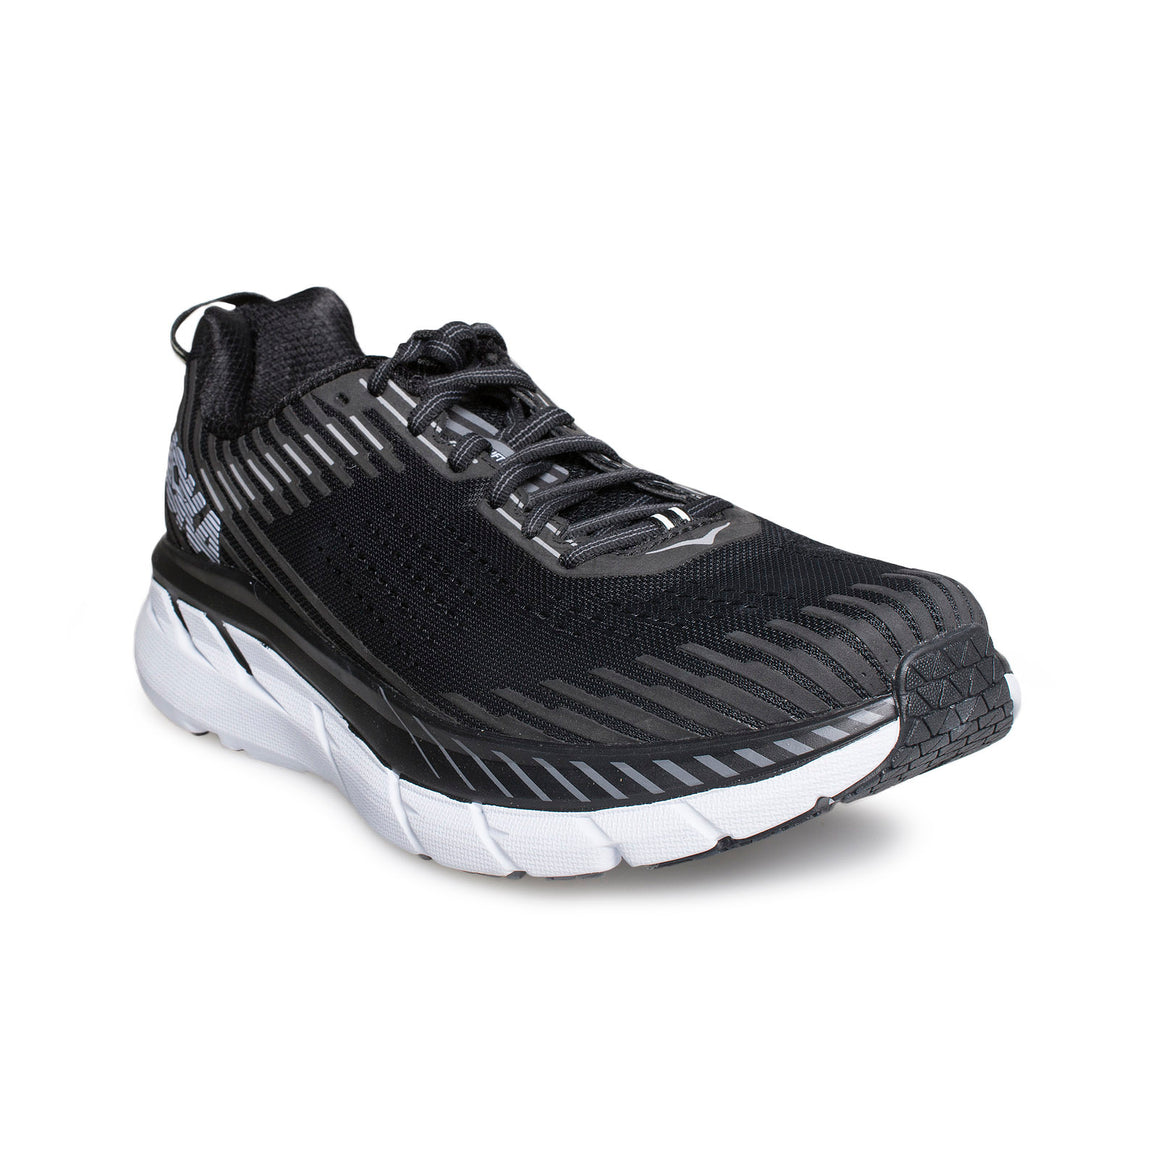 HOKA Clifton 5 Black / White Shoes - Women's